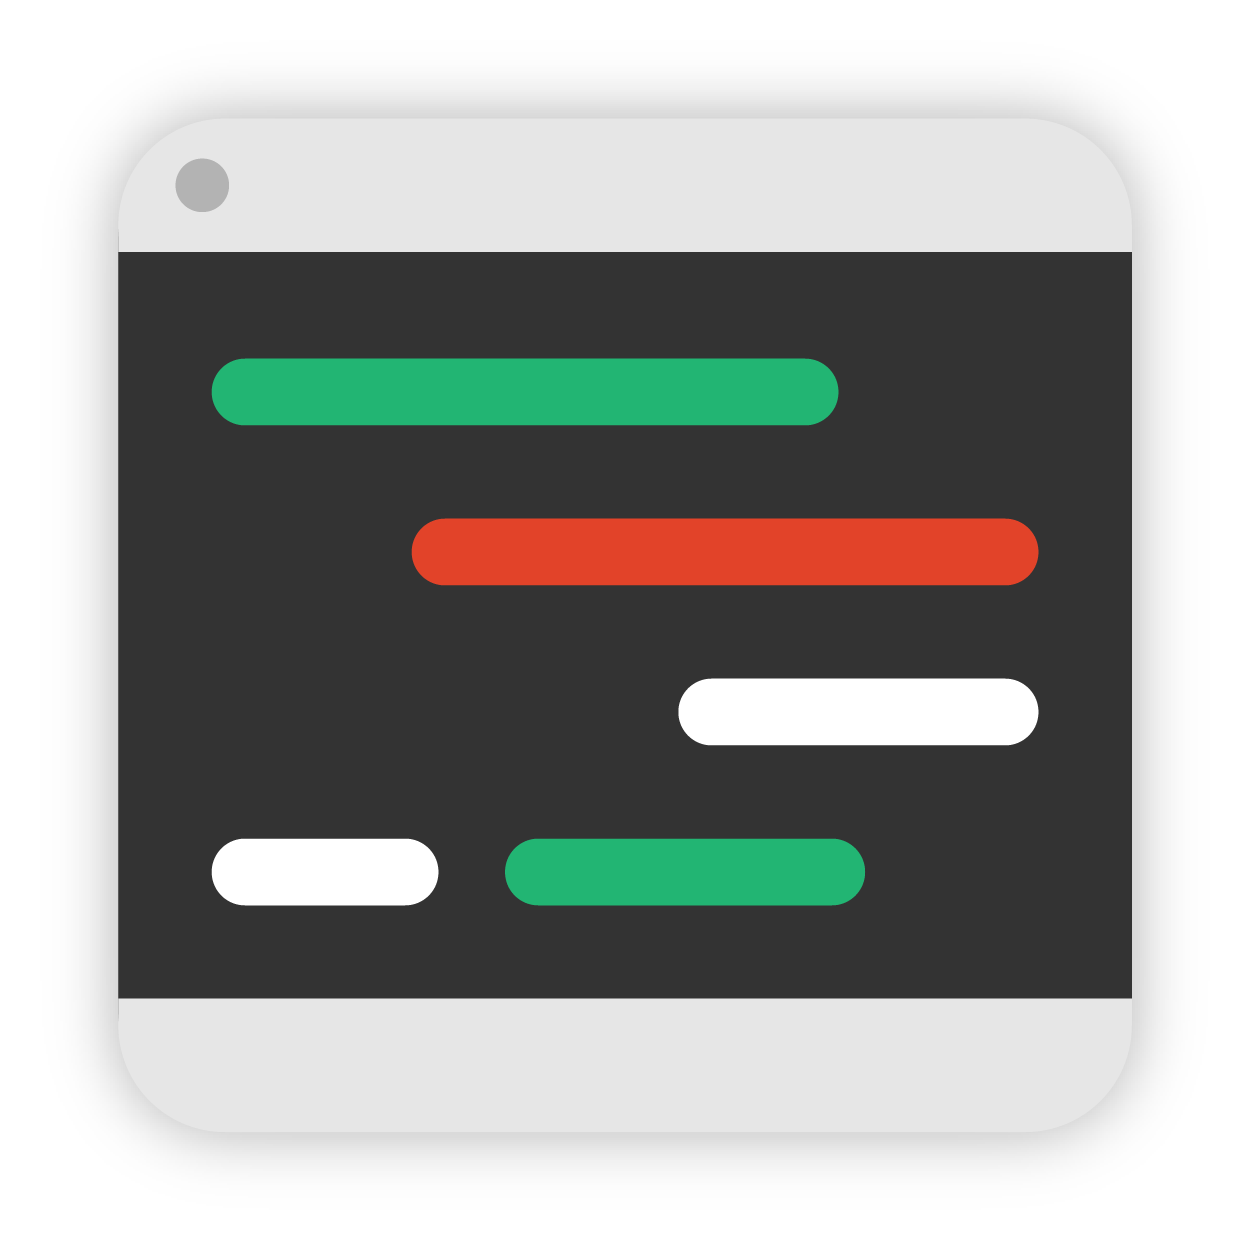 design/presentation-decks/_general-assets/icons/illustrated-icons/code-icon.png